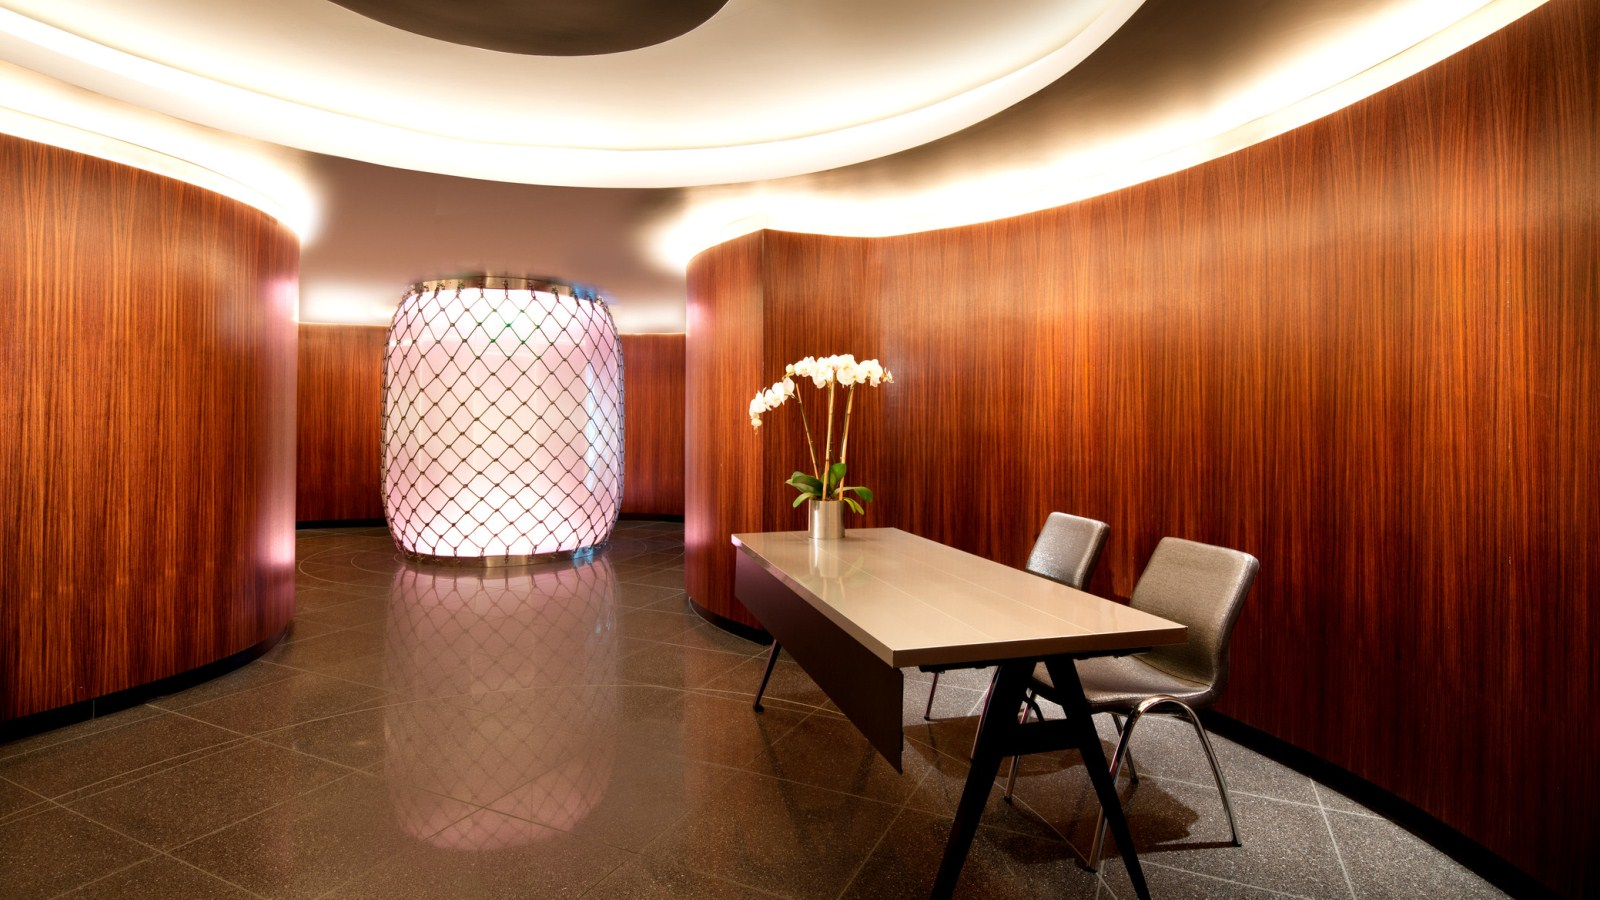 San Francisco Event Venue | Pre-function Space for Social Terrace